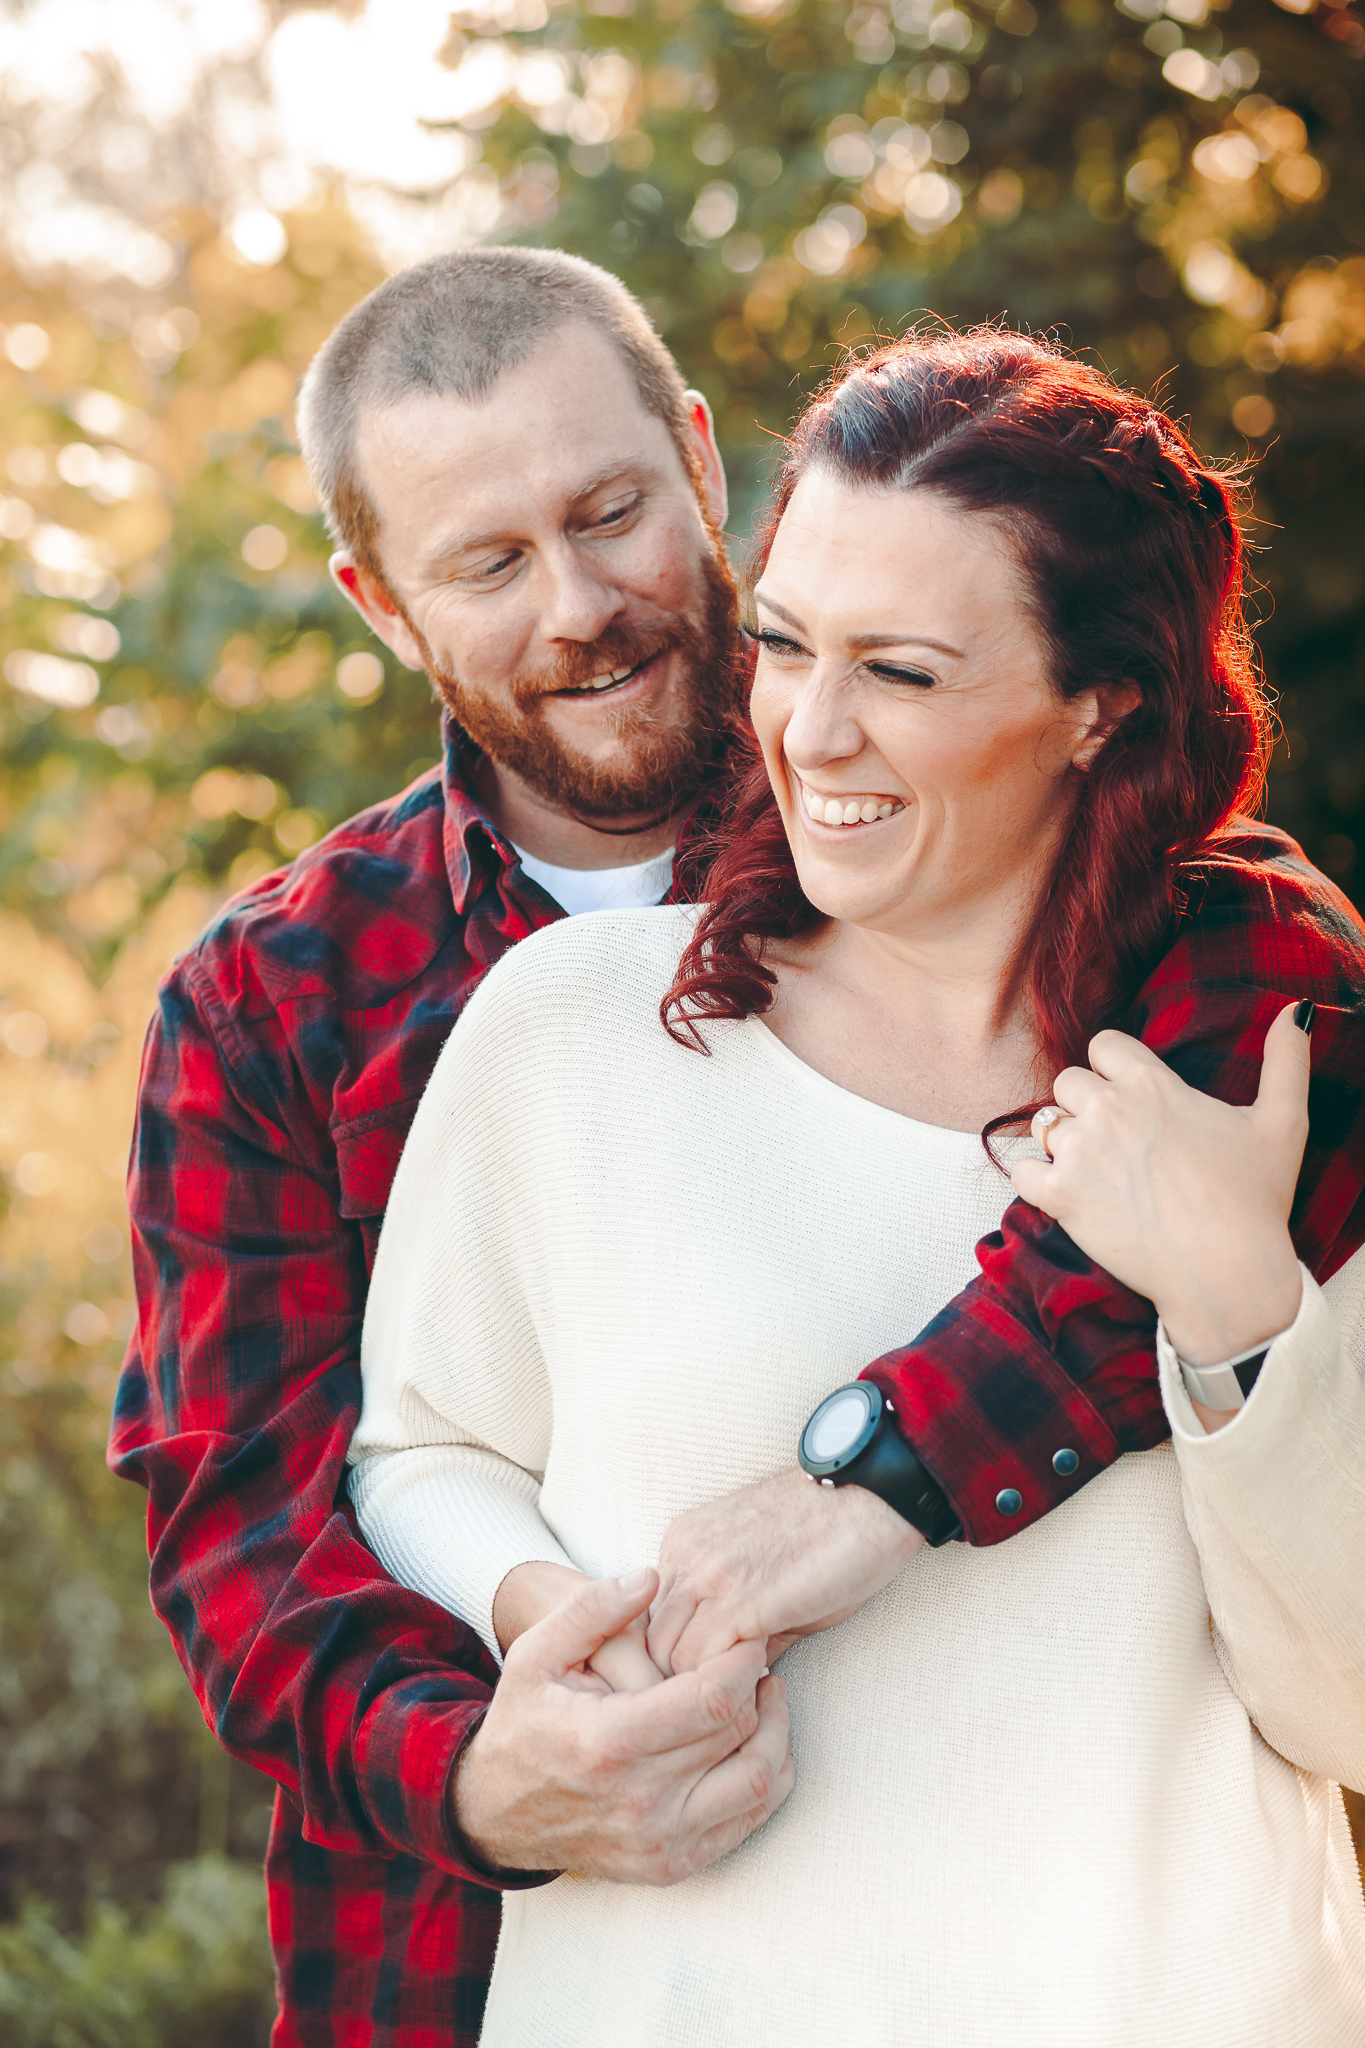 Amy D Photography- Barrie Wedding Photography- Engagement Session- Fall Engagement- Engagement Poses- Barrie Weddings- Wedding Photographer-19.jpg